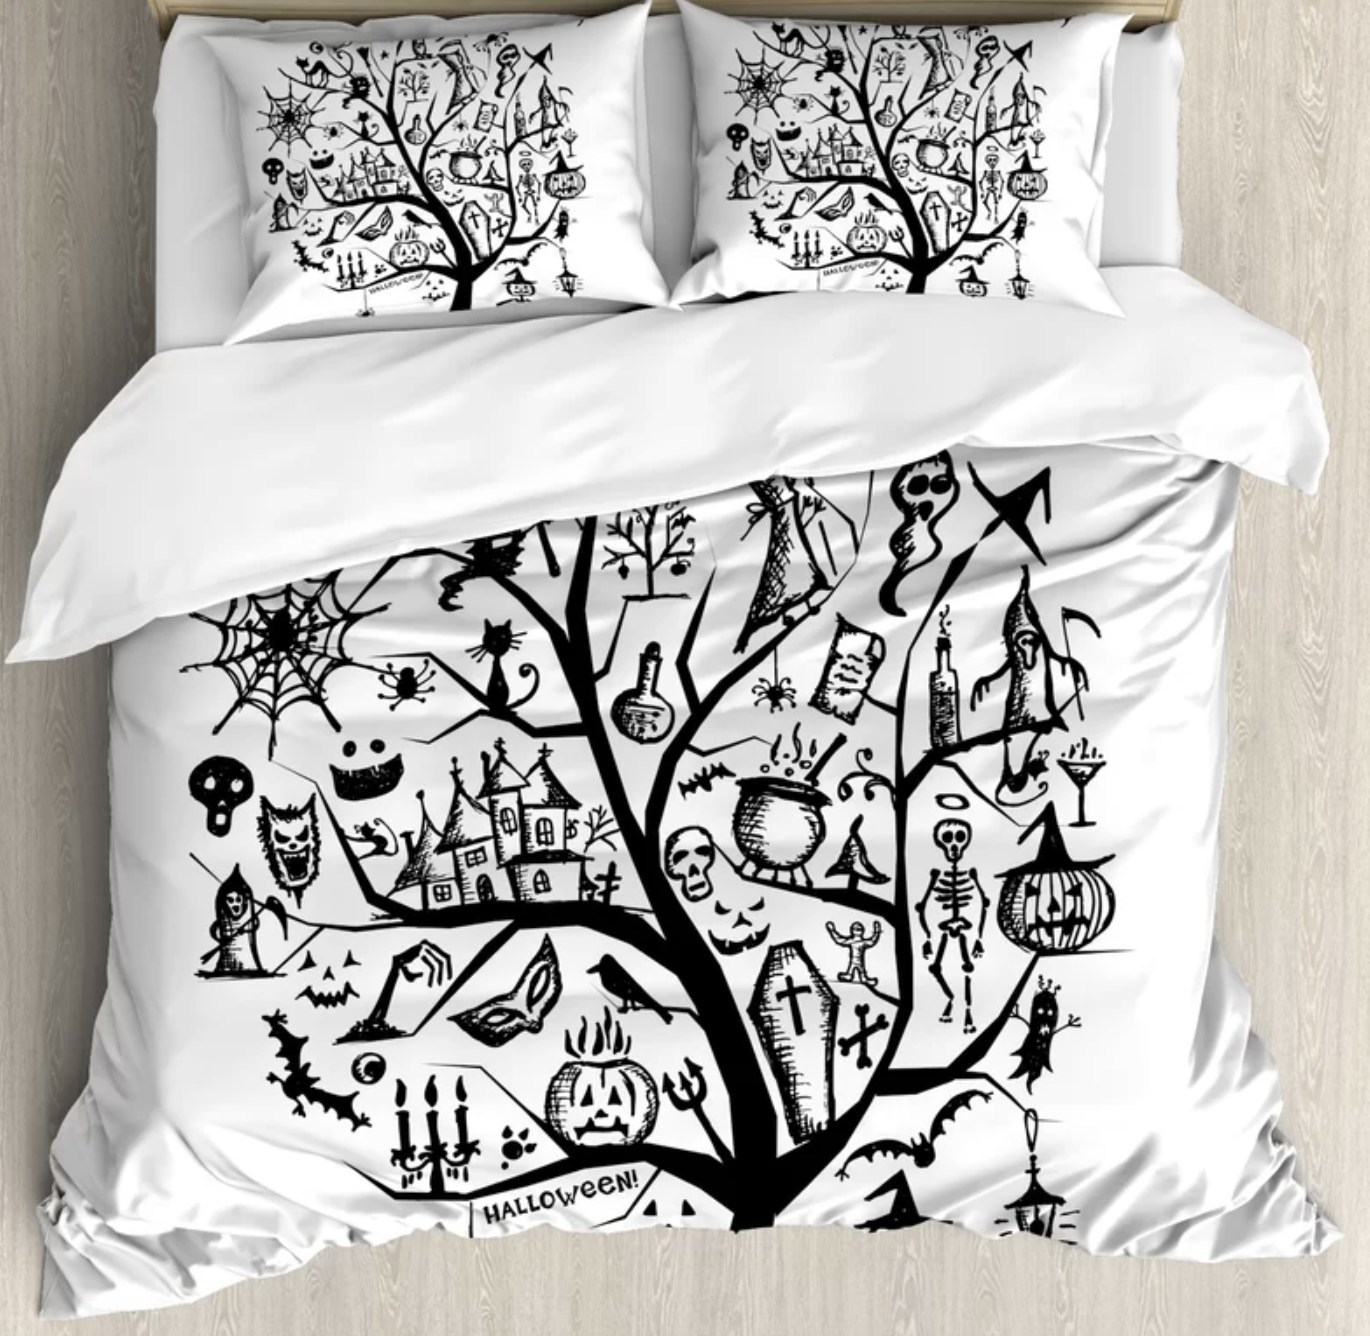 The white duvet and sham fabric has a large black tree that various Halloween elements like coffins, cauldrons, candles, masks and many other fun elements